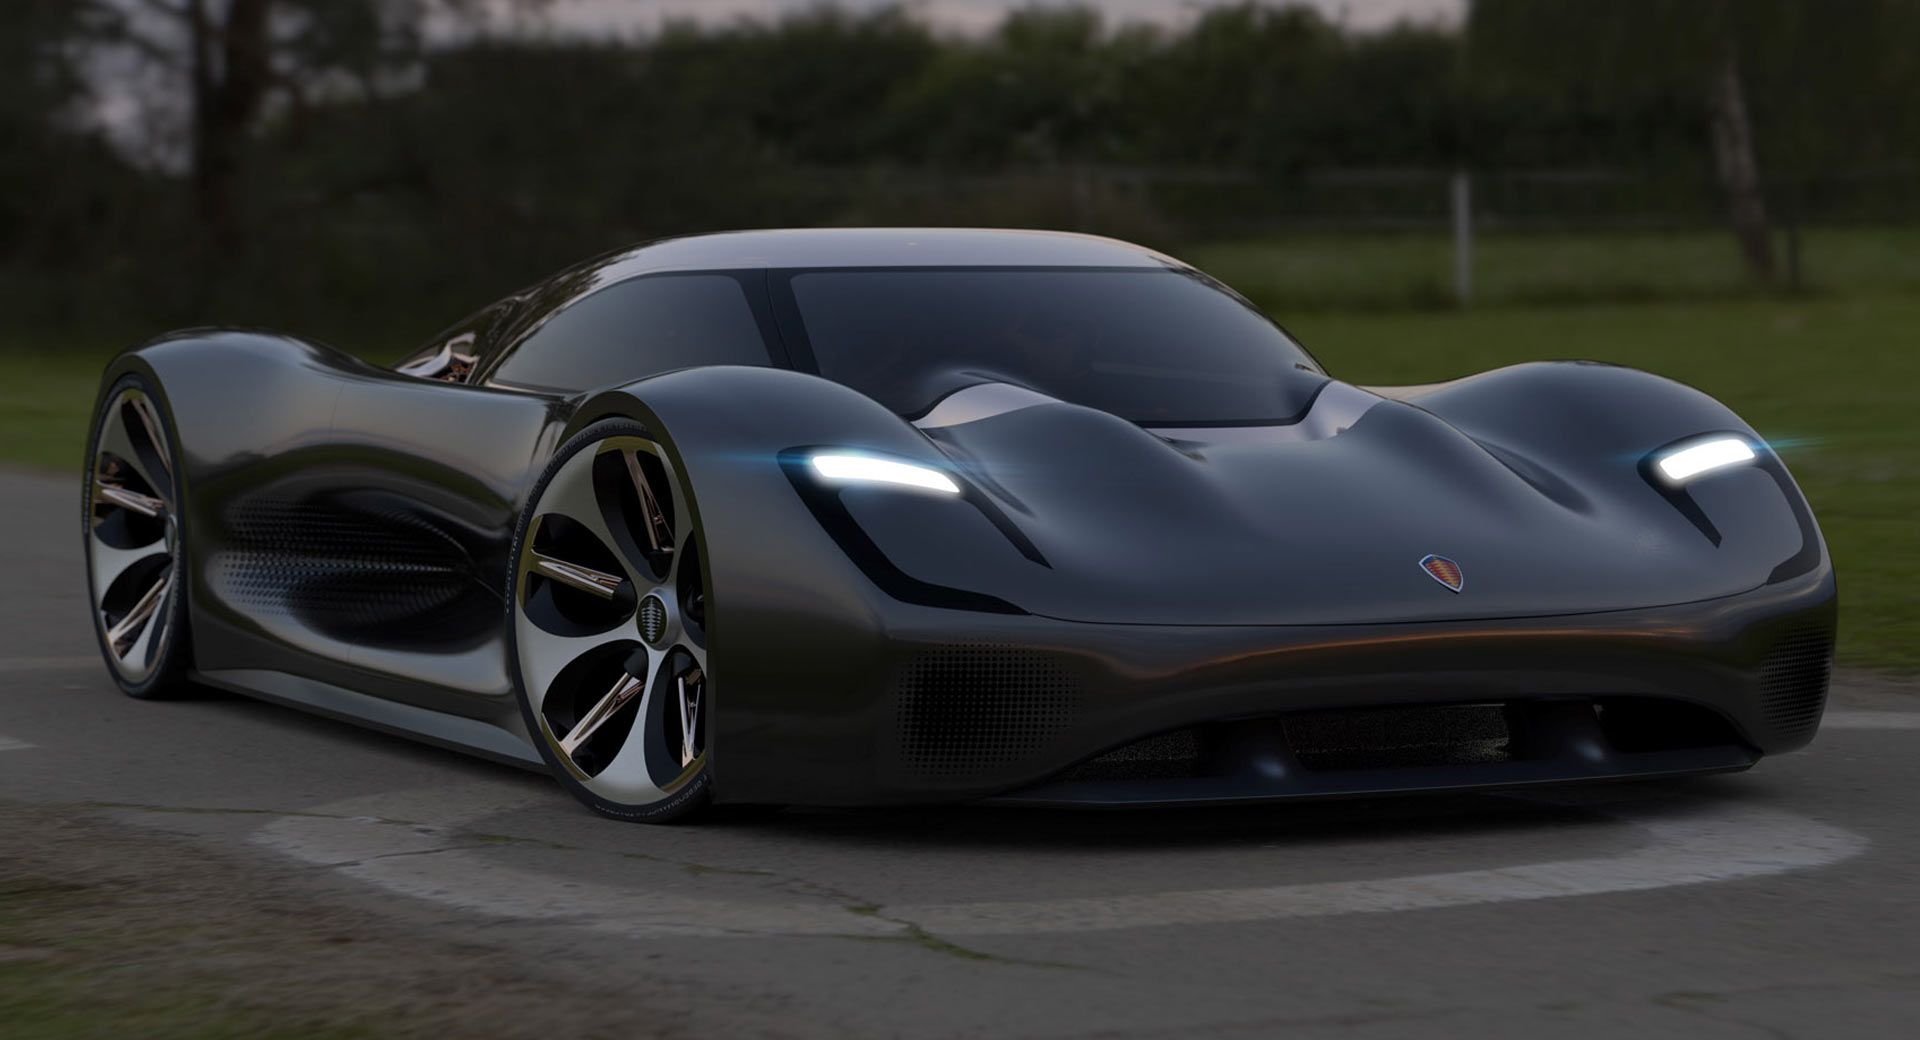 A Koenigsegg designed by a Mitsubishi designer turns out to be a thing of beauty.